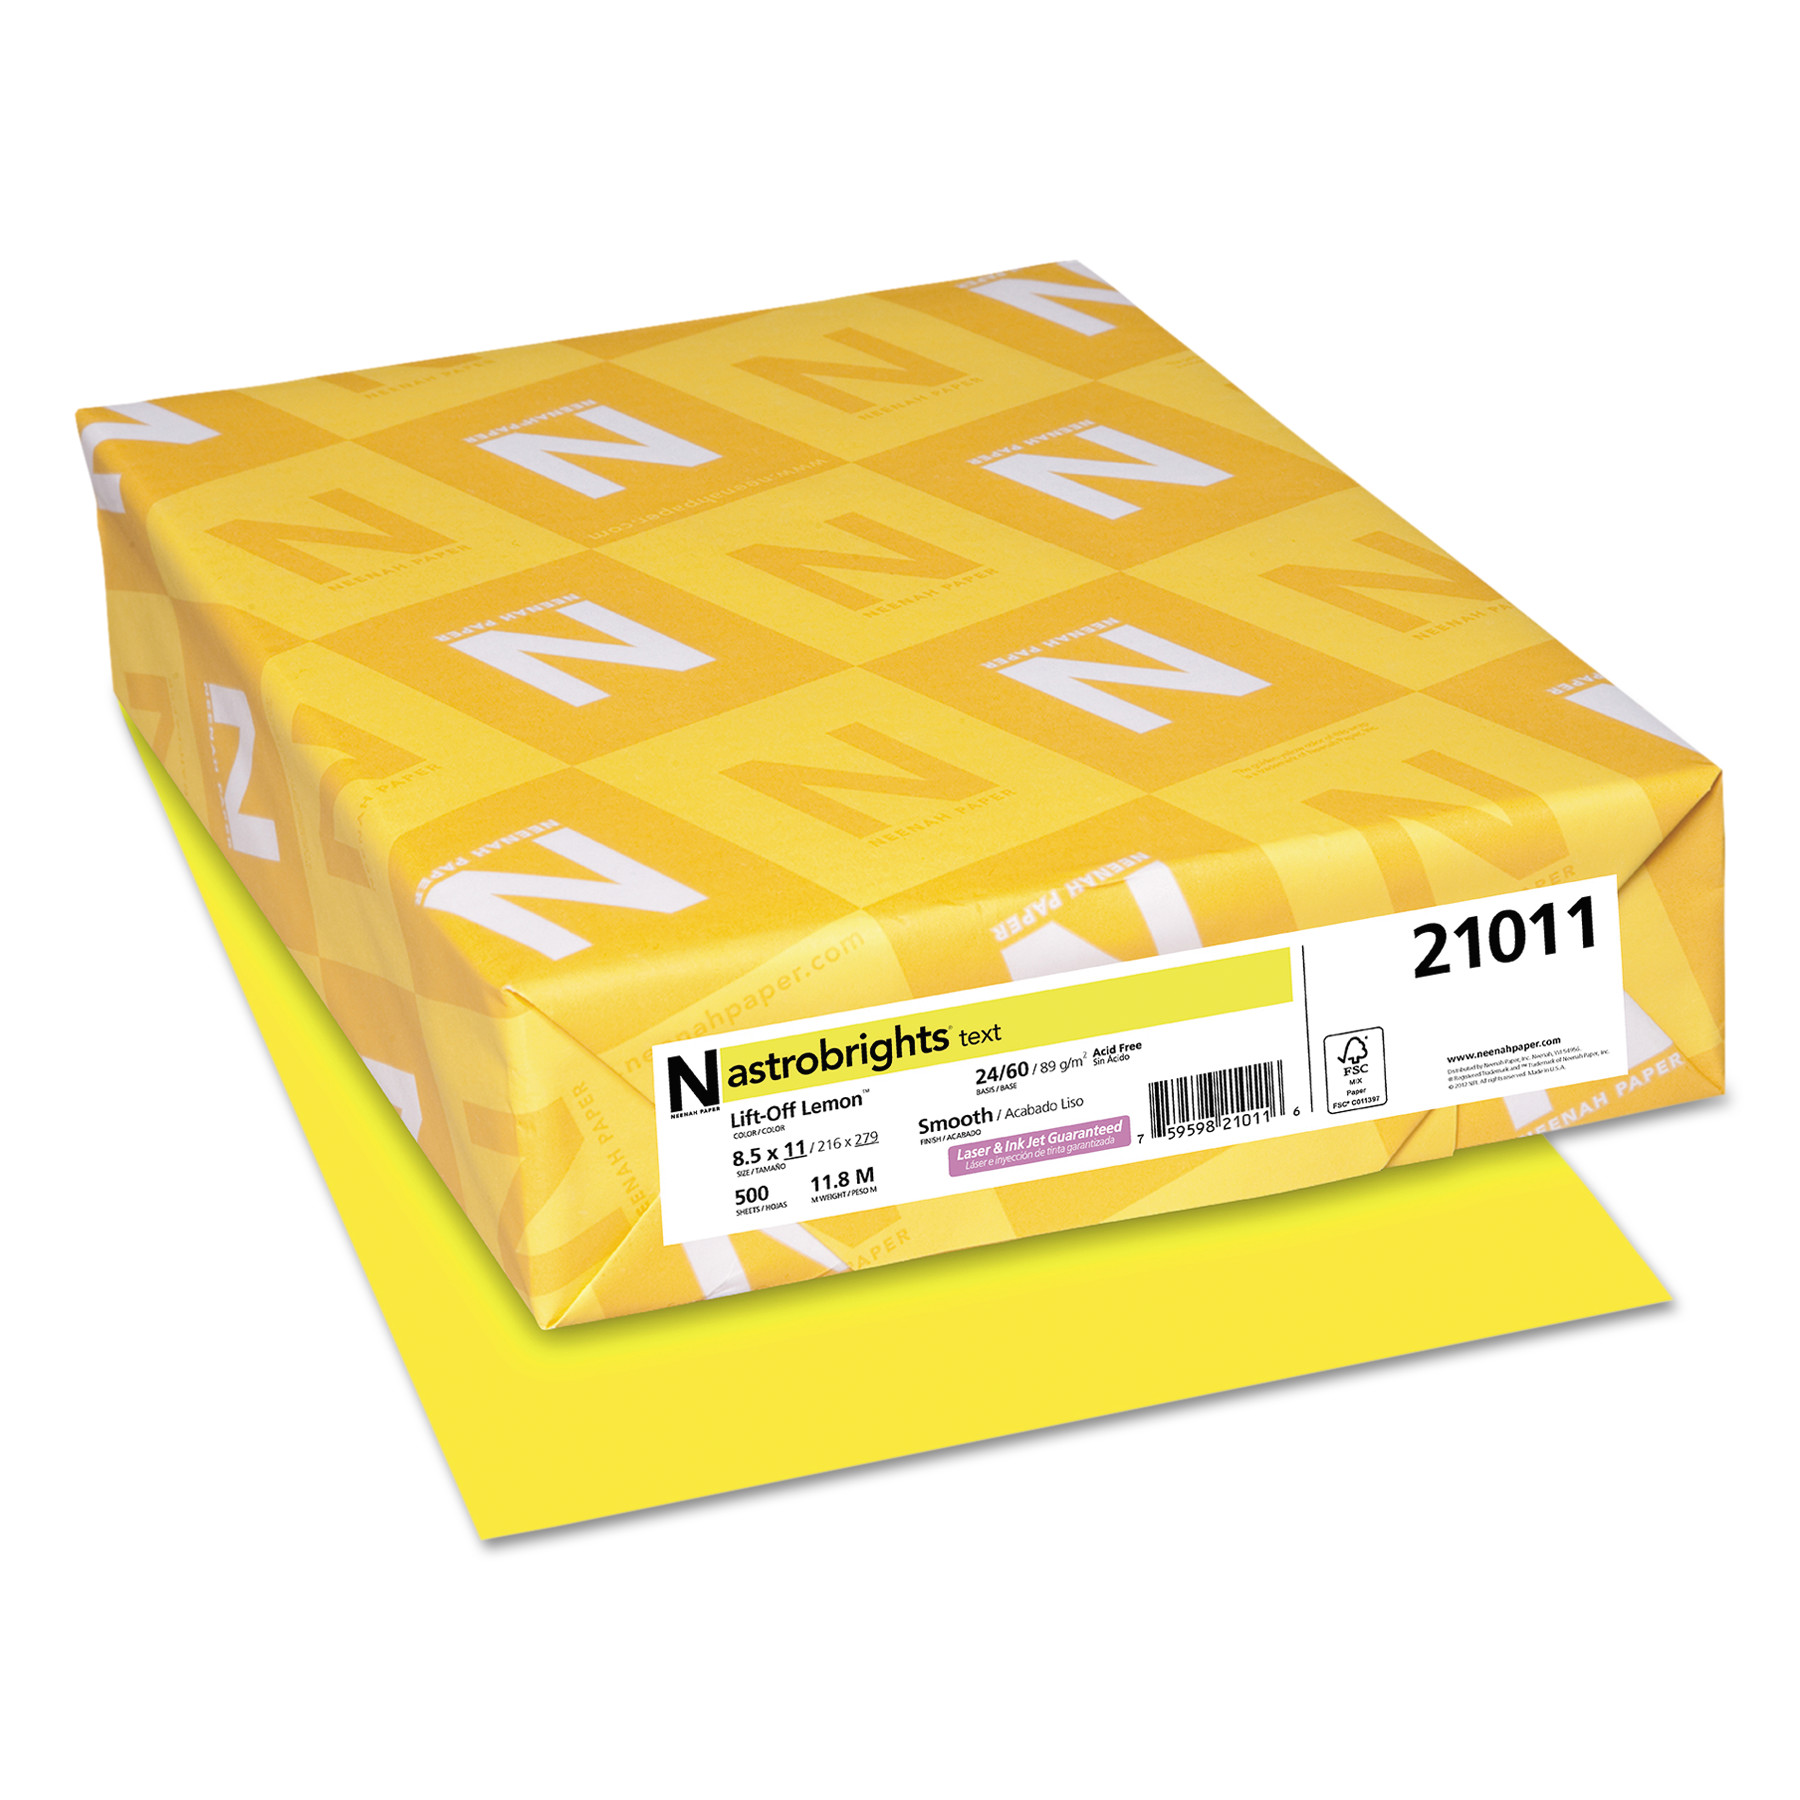 Astrobrights Color Paper, 24lb, 8 1/2 x 11, Lift-Off Lemon, 500 Sheets -WAU21011